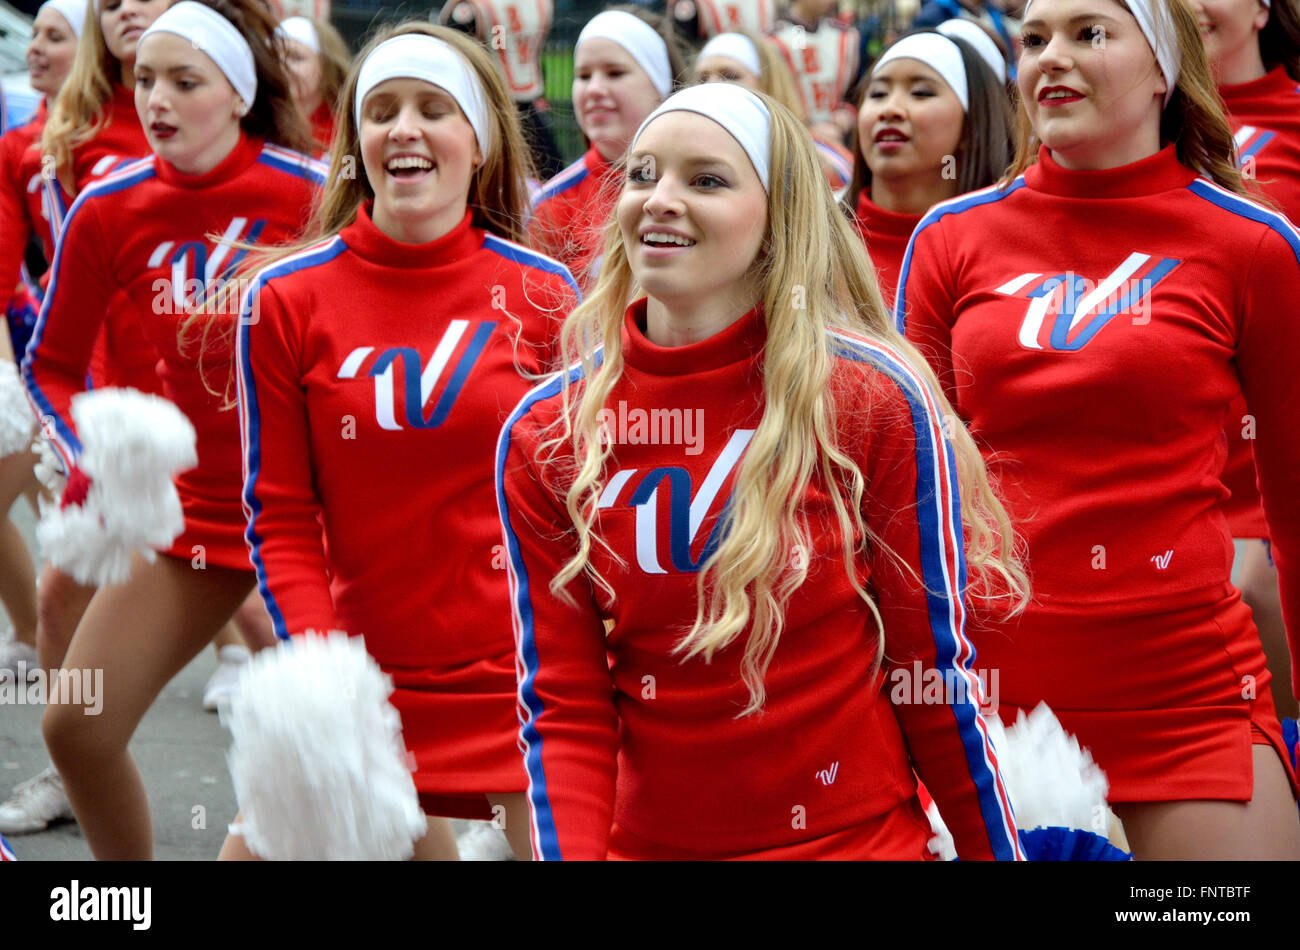 London, UK. New Year's Day parade Jan1 2016. American cheerleaders - Stock Image